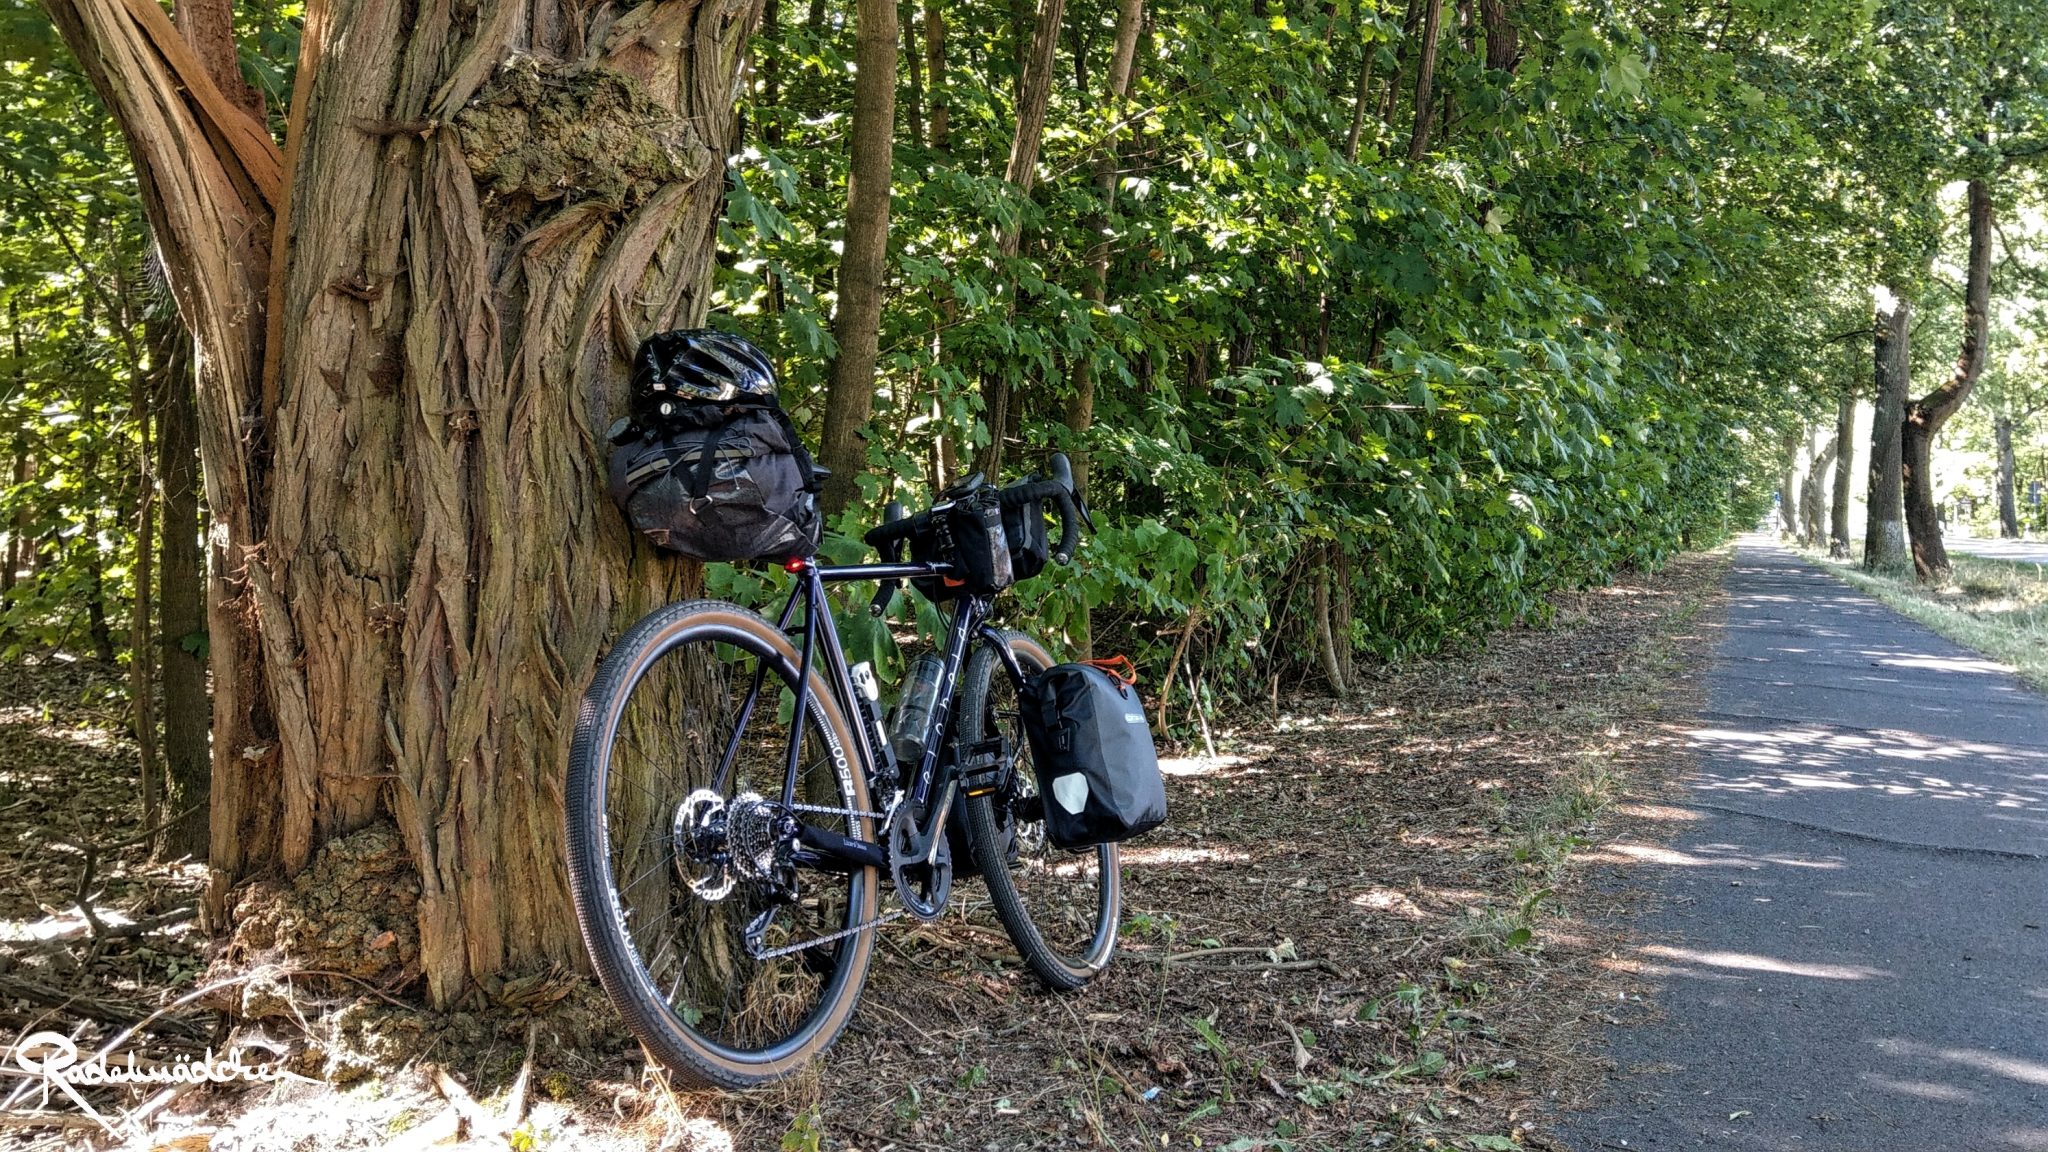 gravelbike leaning against a tree